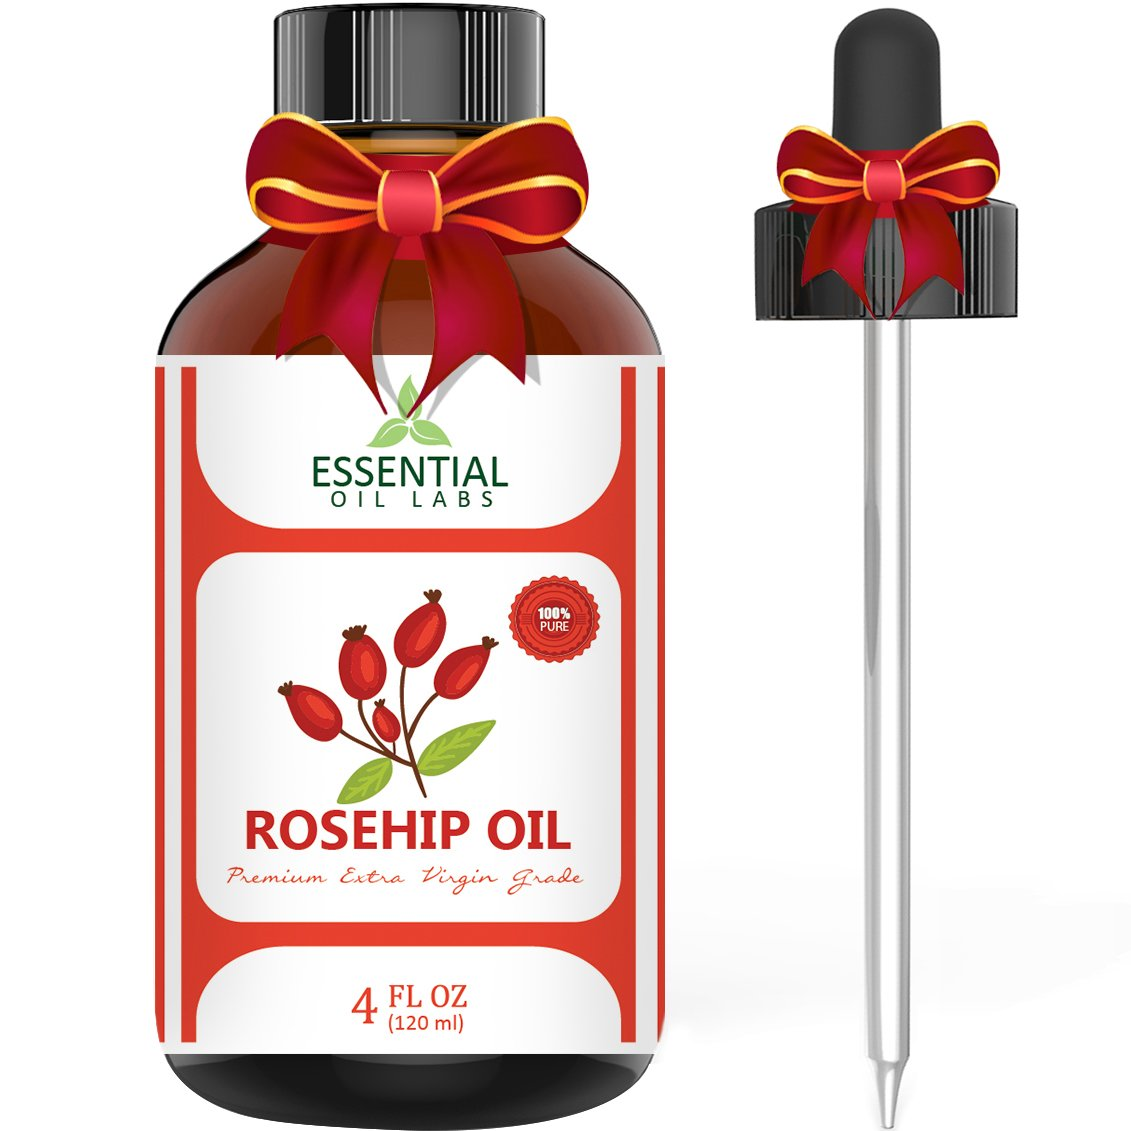 Rosehip Oil - Organic Extra Virgin Grade - Large 4 Ounce Bottle - Ultimate Beauty Companion for Face, Nails, Hair and Skin - with Premium Glass Dropper by Essential Oil Labs EOL-ROH4